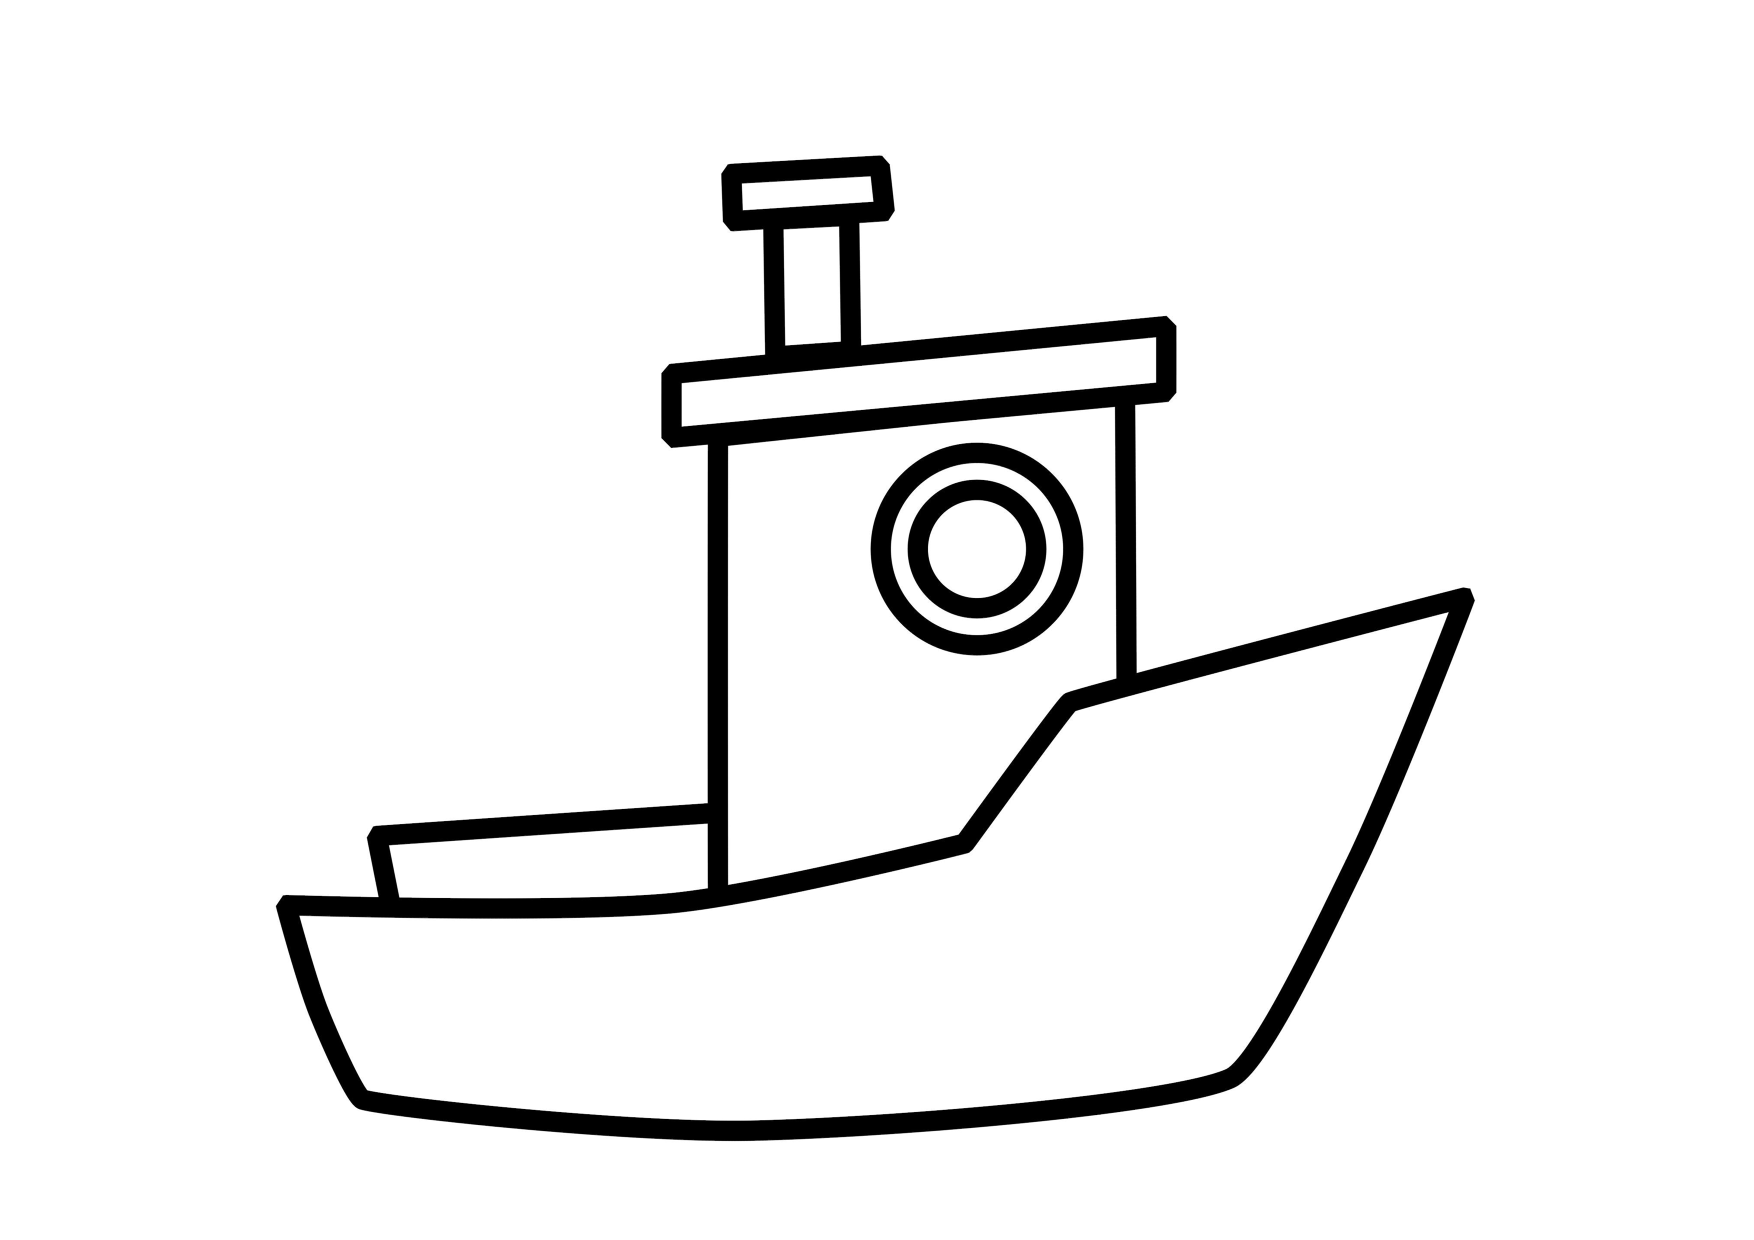 boat coloring page easy boat coloring coloring pages boat page coloring